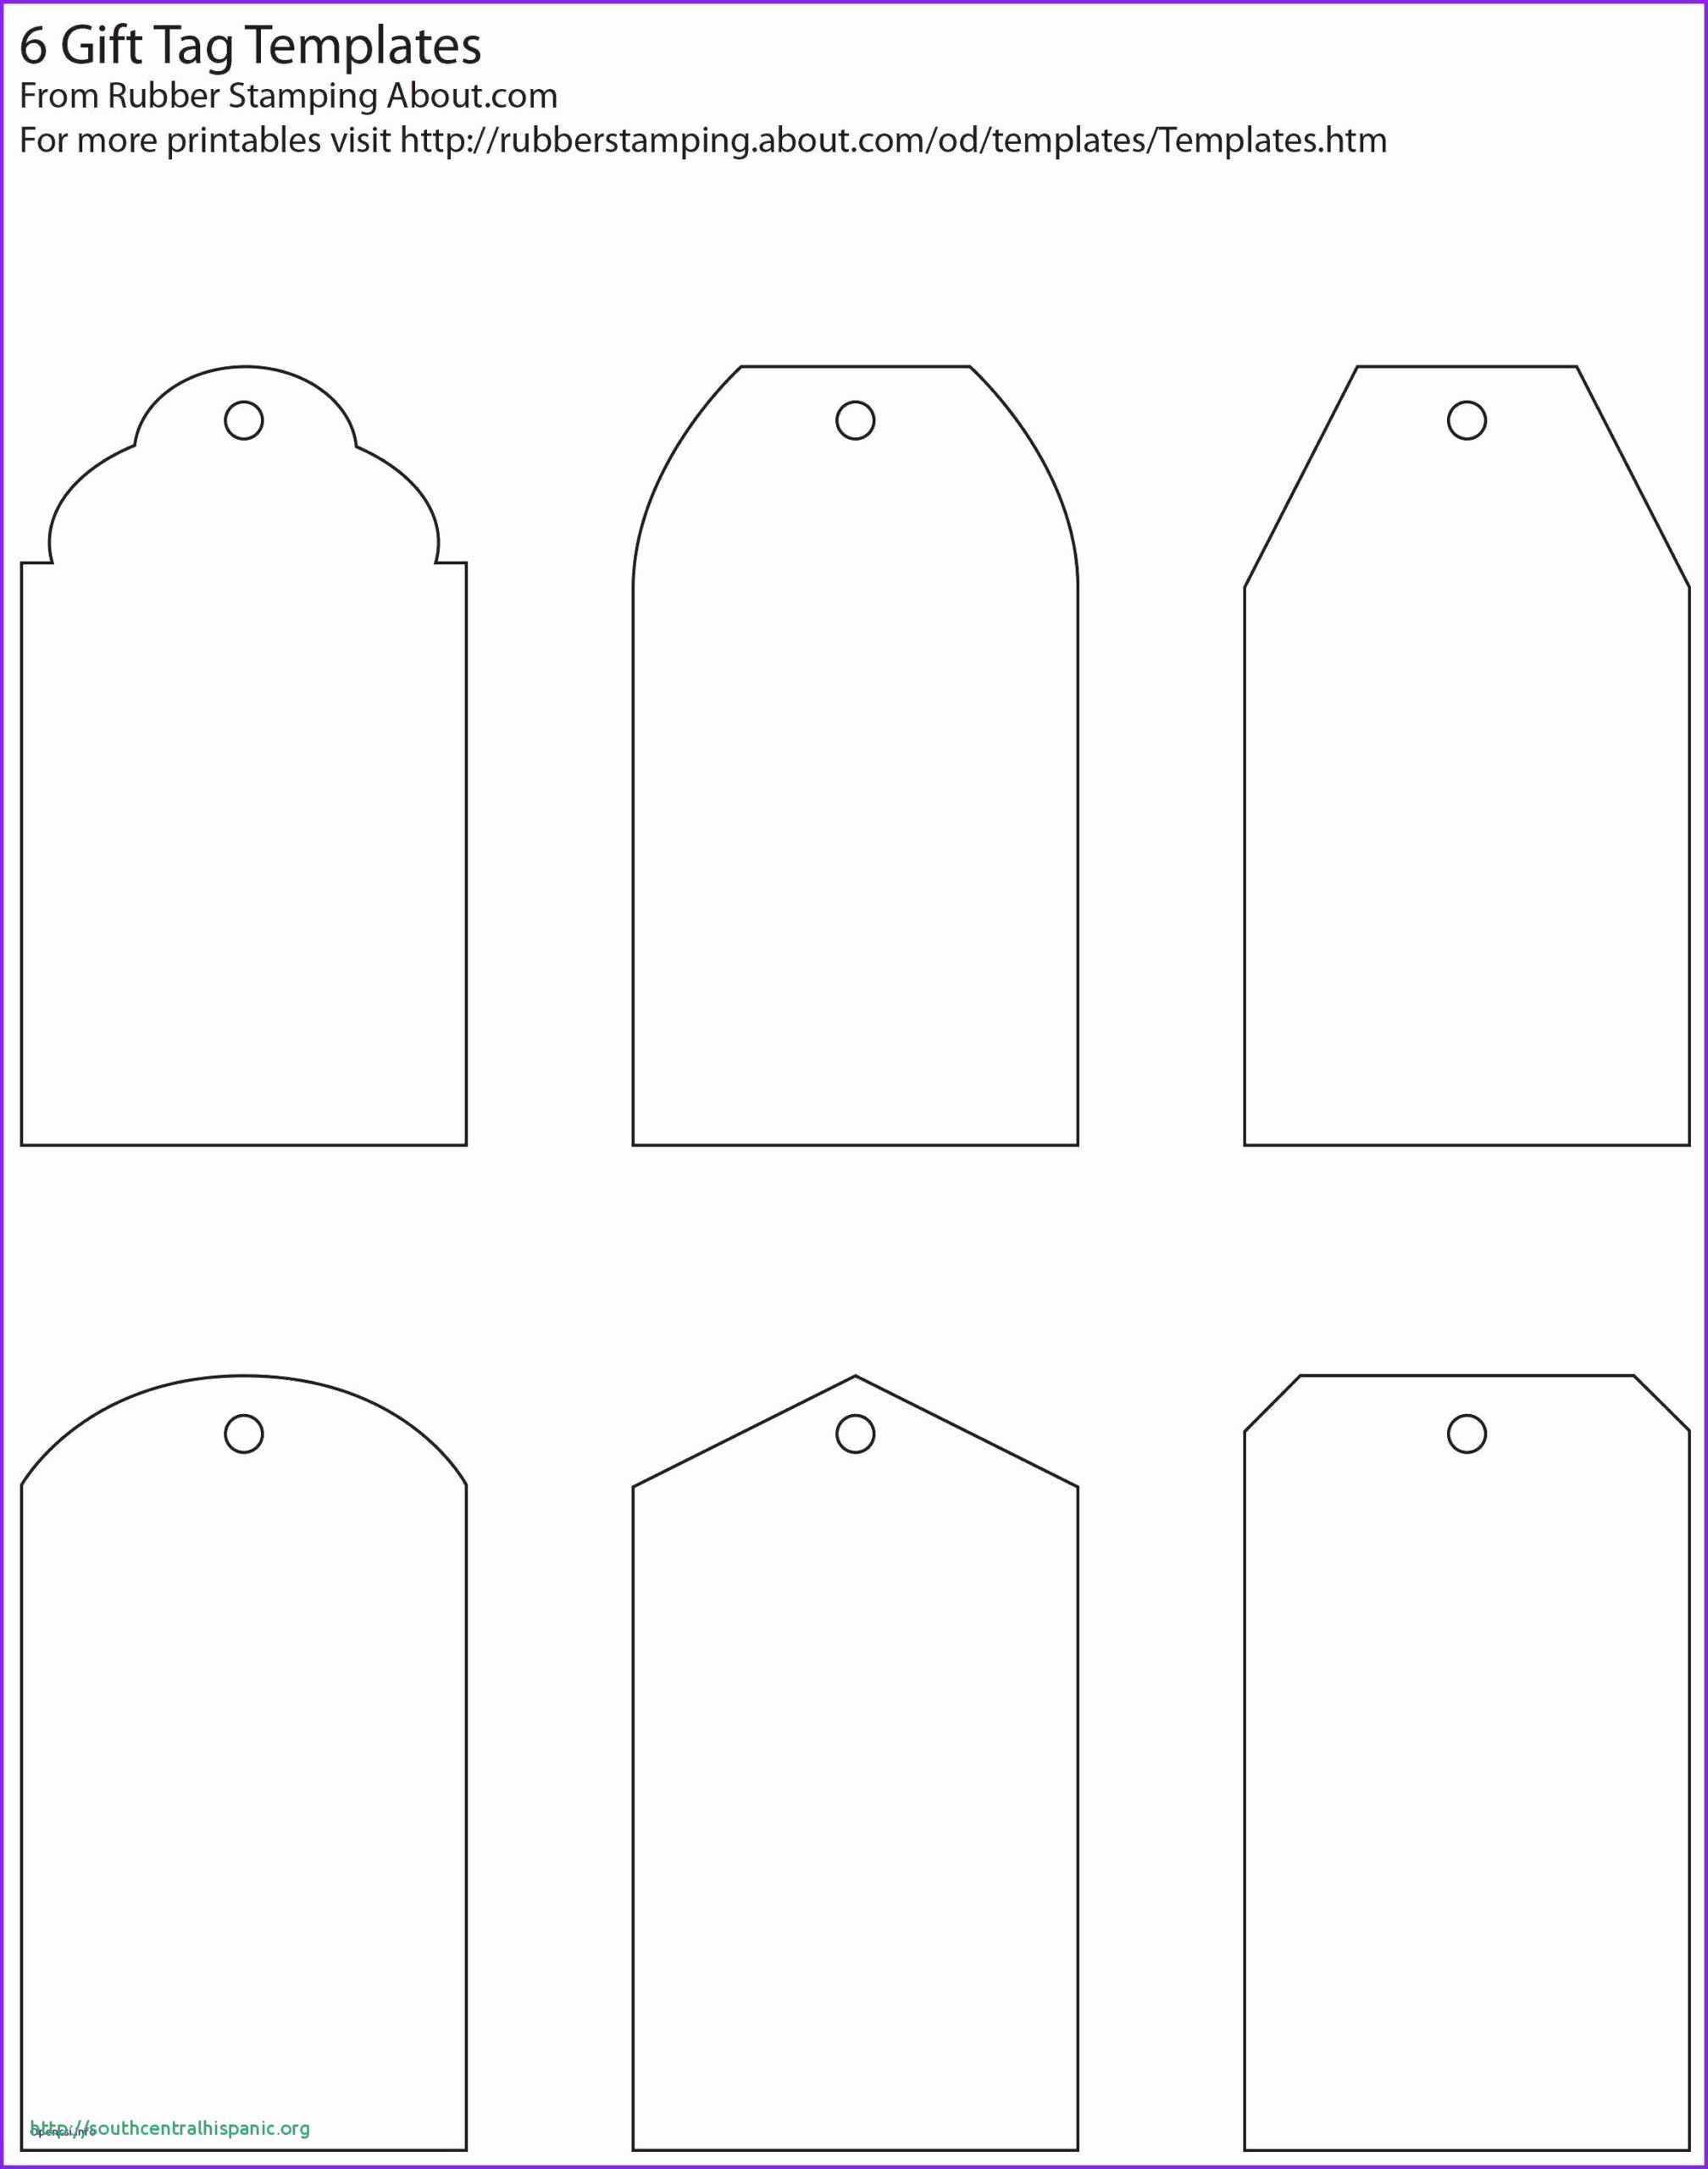 Free Place Card Template 6 Per Sheet Inspirational Template Regarding Place Card Template 6 Per Sheet